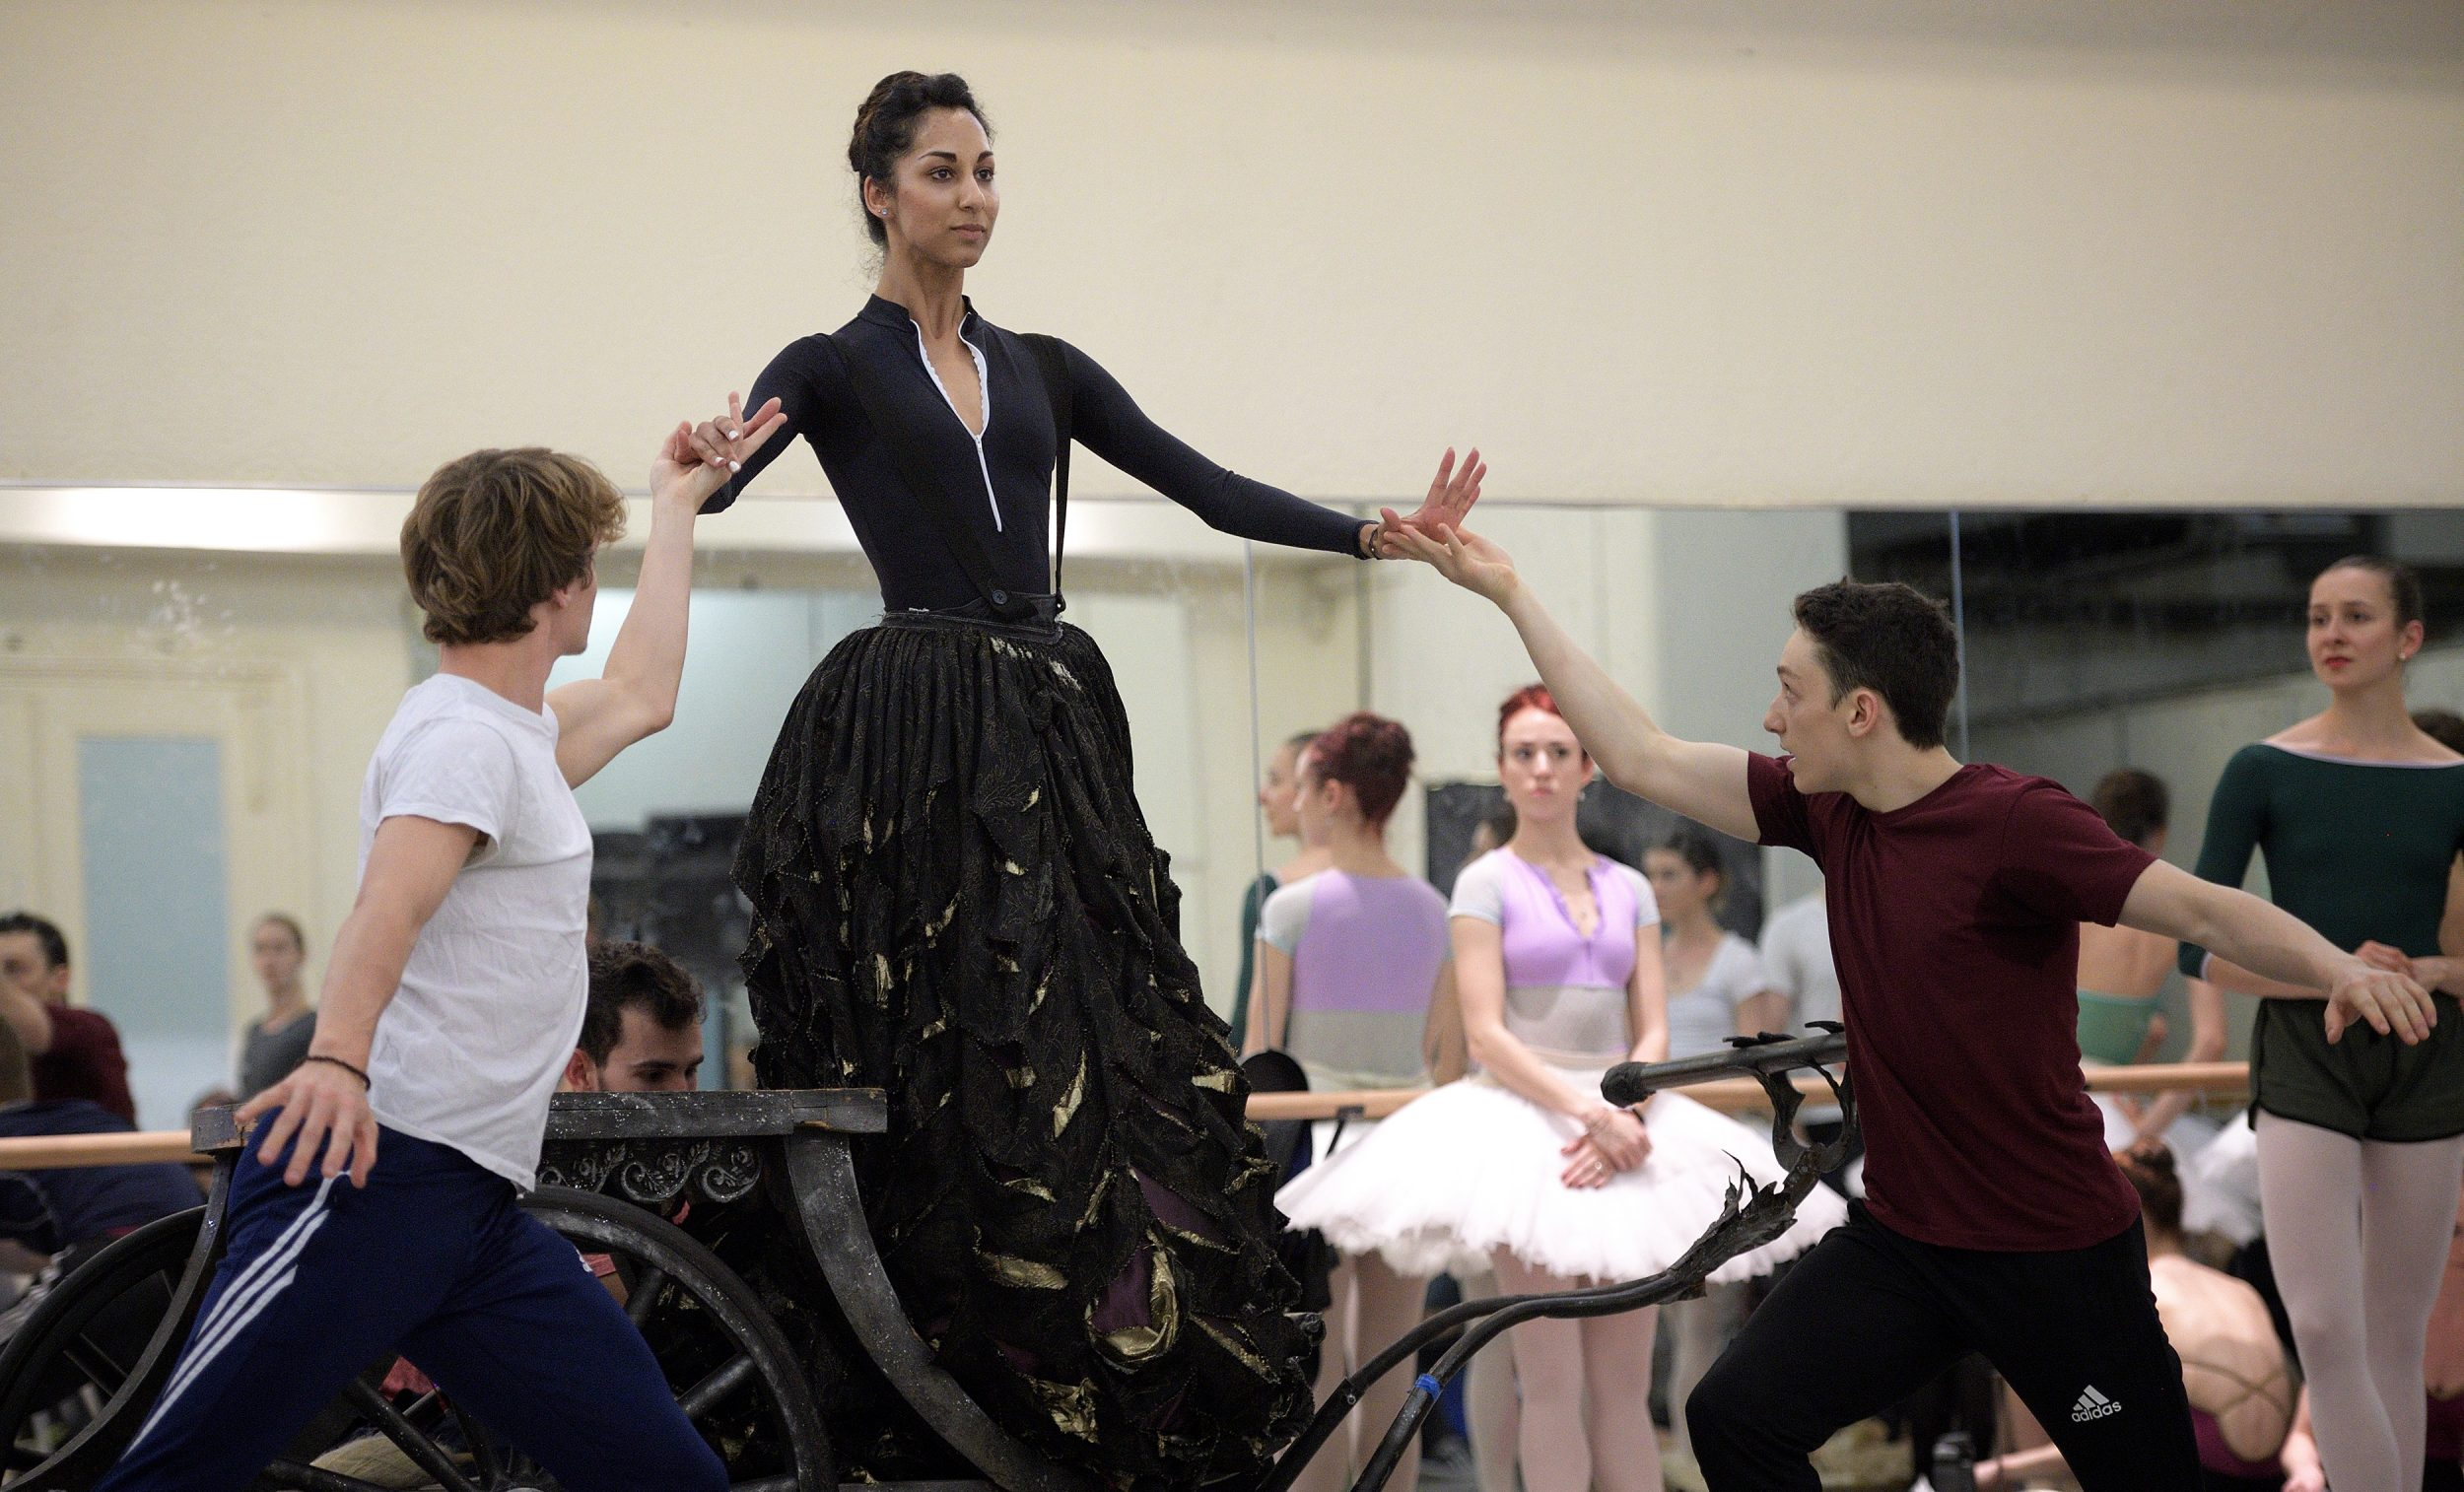 Sarah Kundi rehearsing The Sleeping Beauty © Laurent Liotardo (4)_WEB